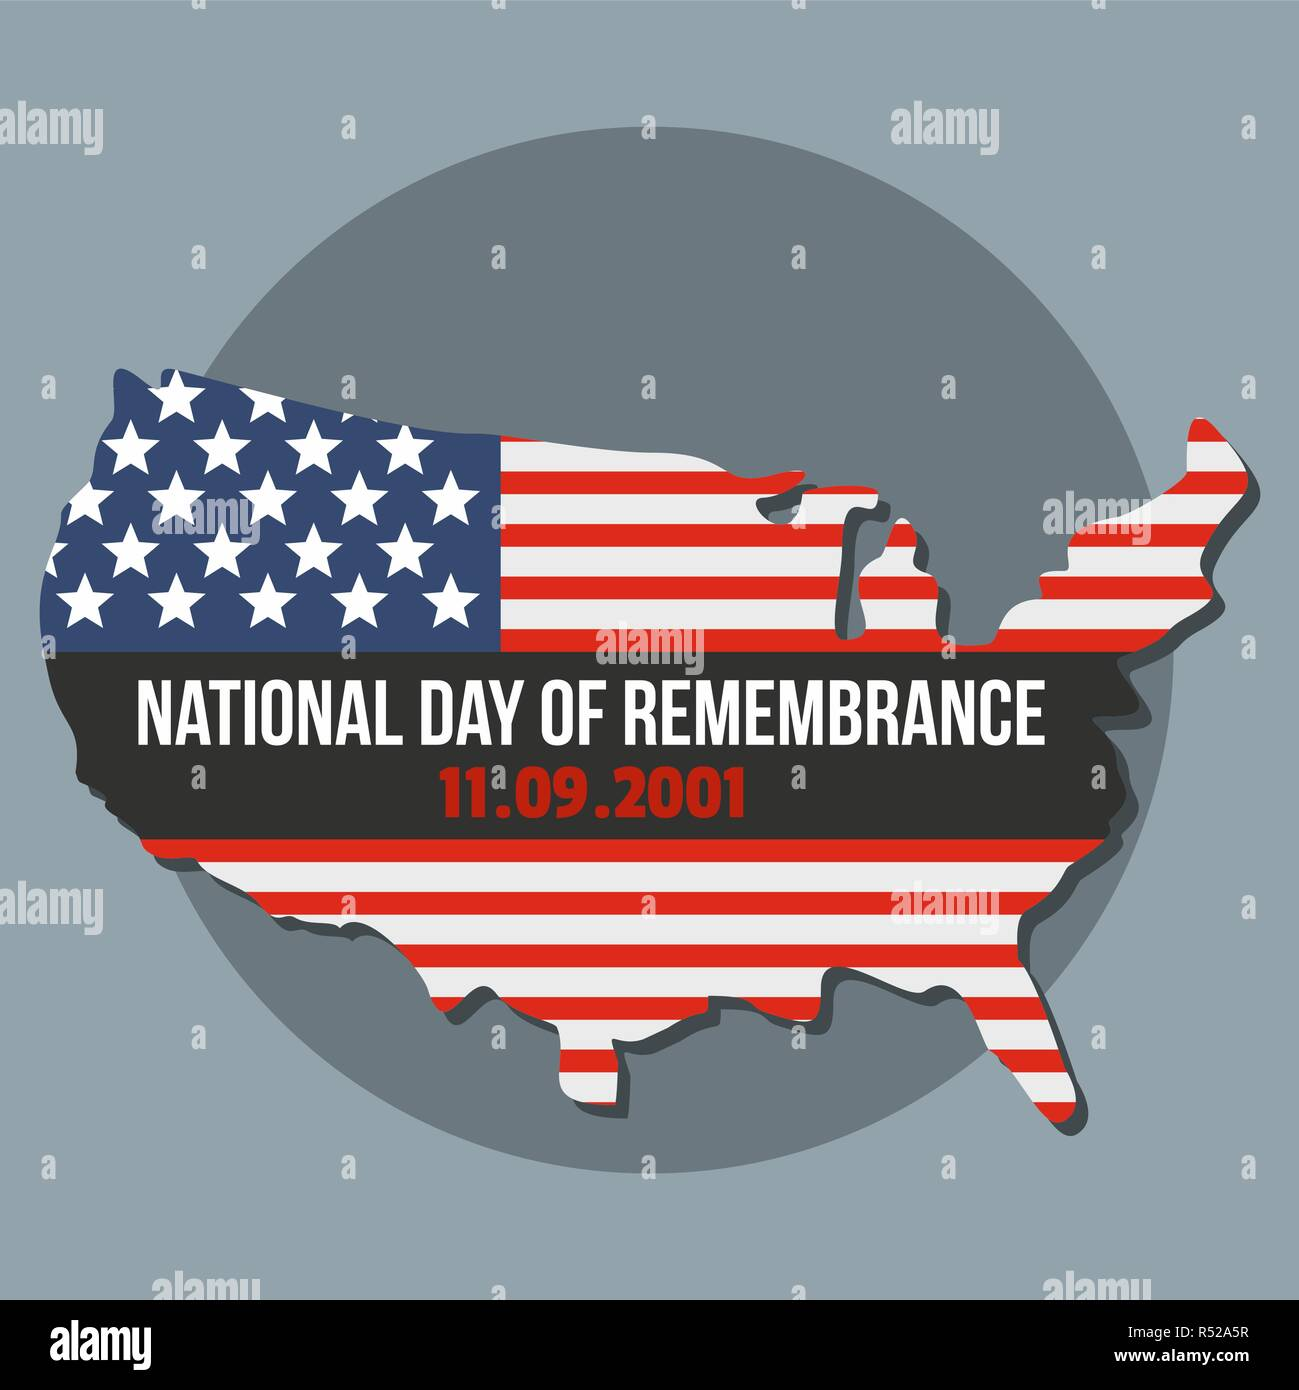 National american day of remembrance background. Flat illustration of national american day of remembrance vector background for web design - Stock Vector